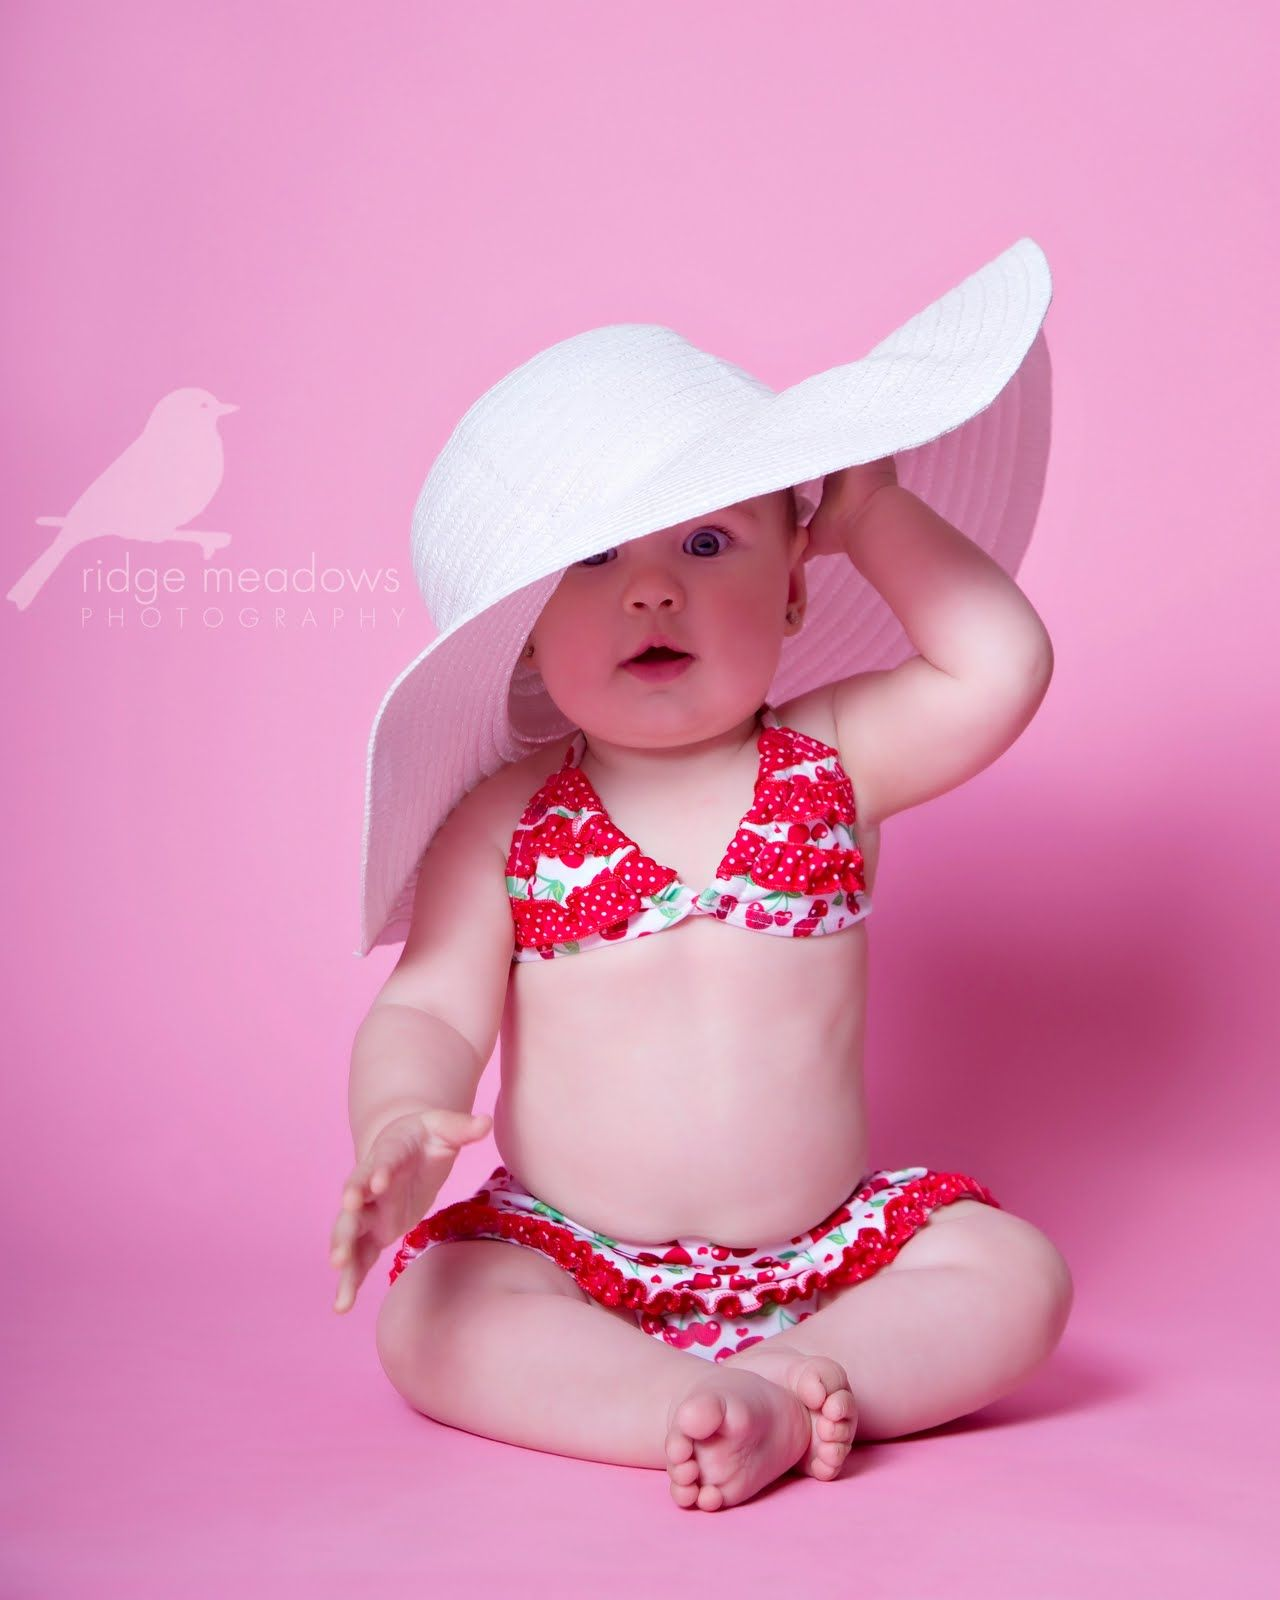 Your Best Of 2011 Inspire Me Baby Baby Pictures Baby Bath Baby Bikini